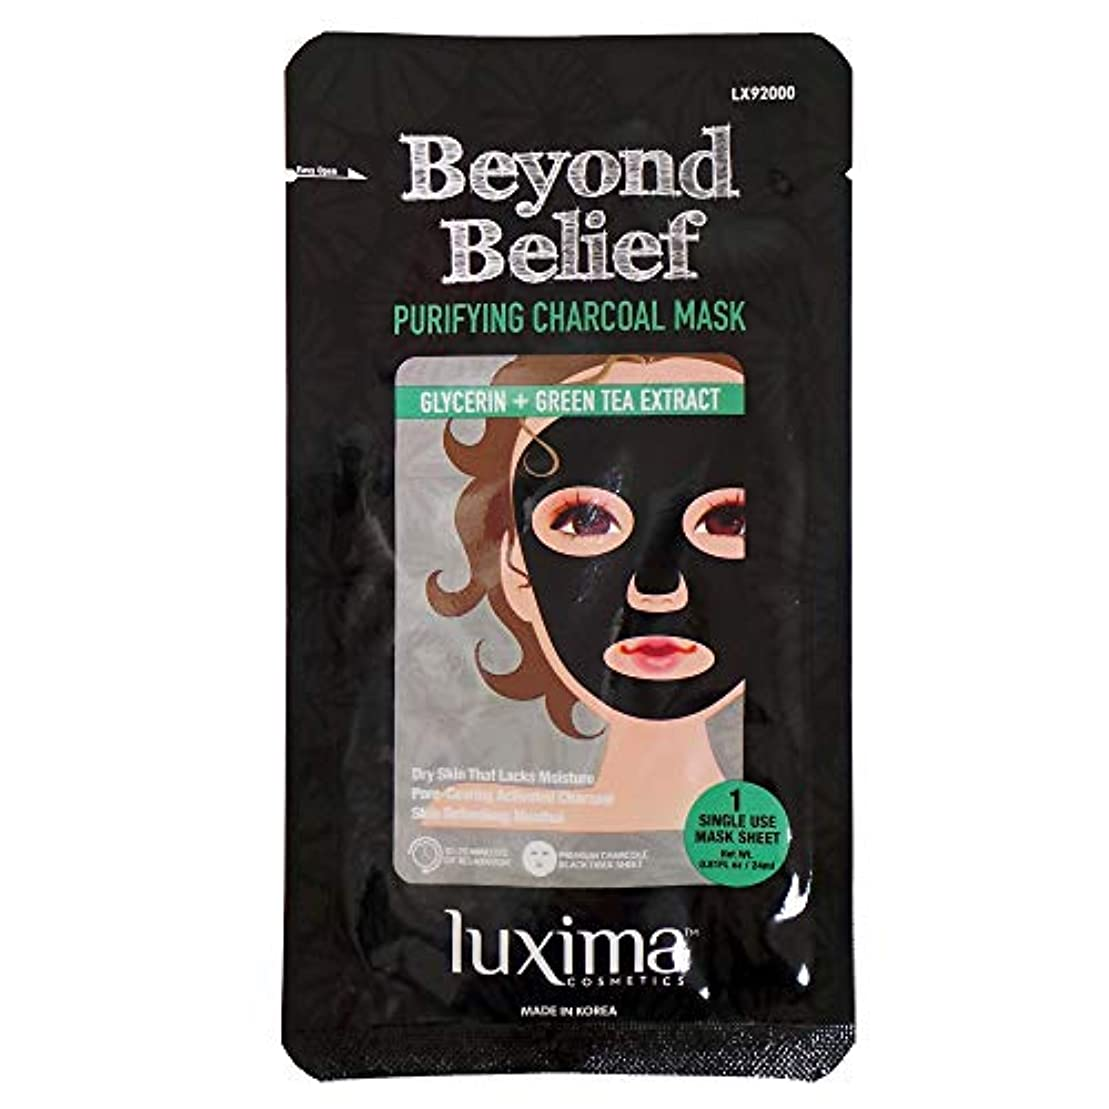 襟クルーズ特権LUXIMA Beyond Belief Purifying Charcoal Mask (並行輸入品)